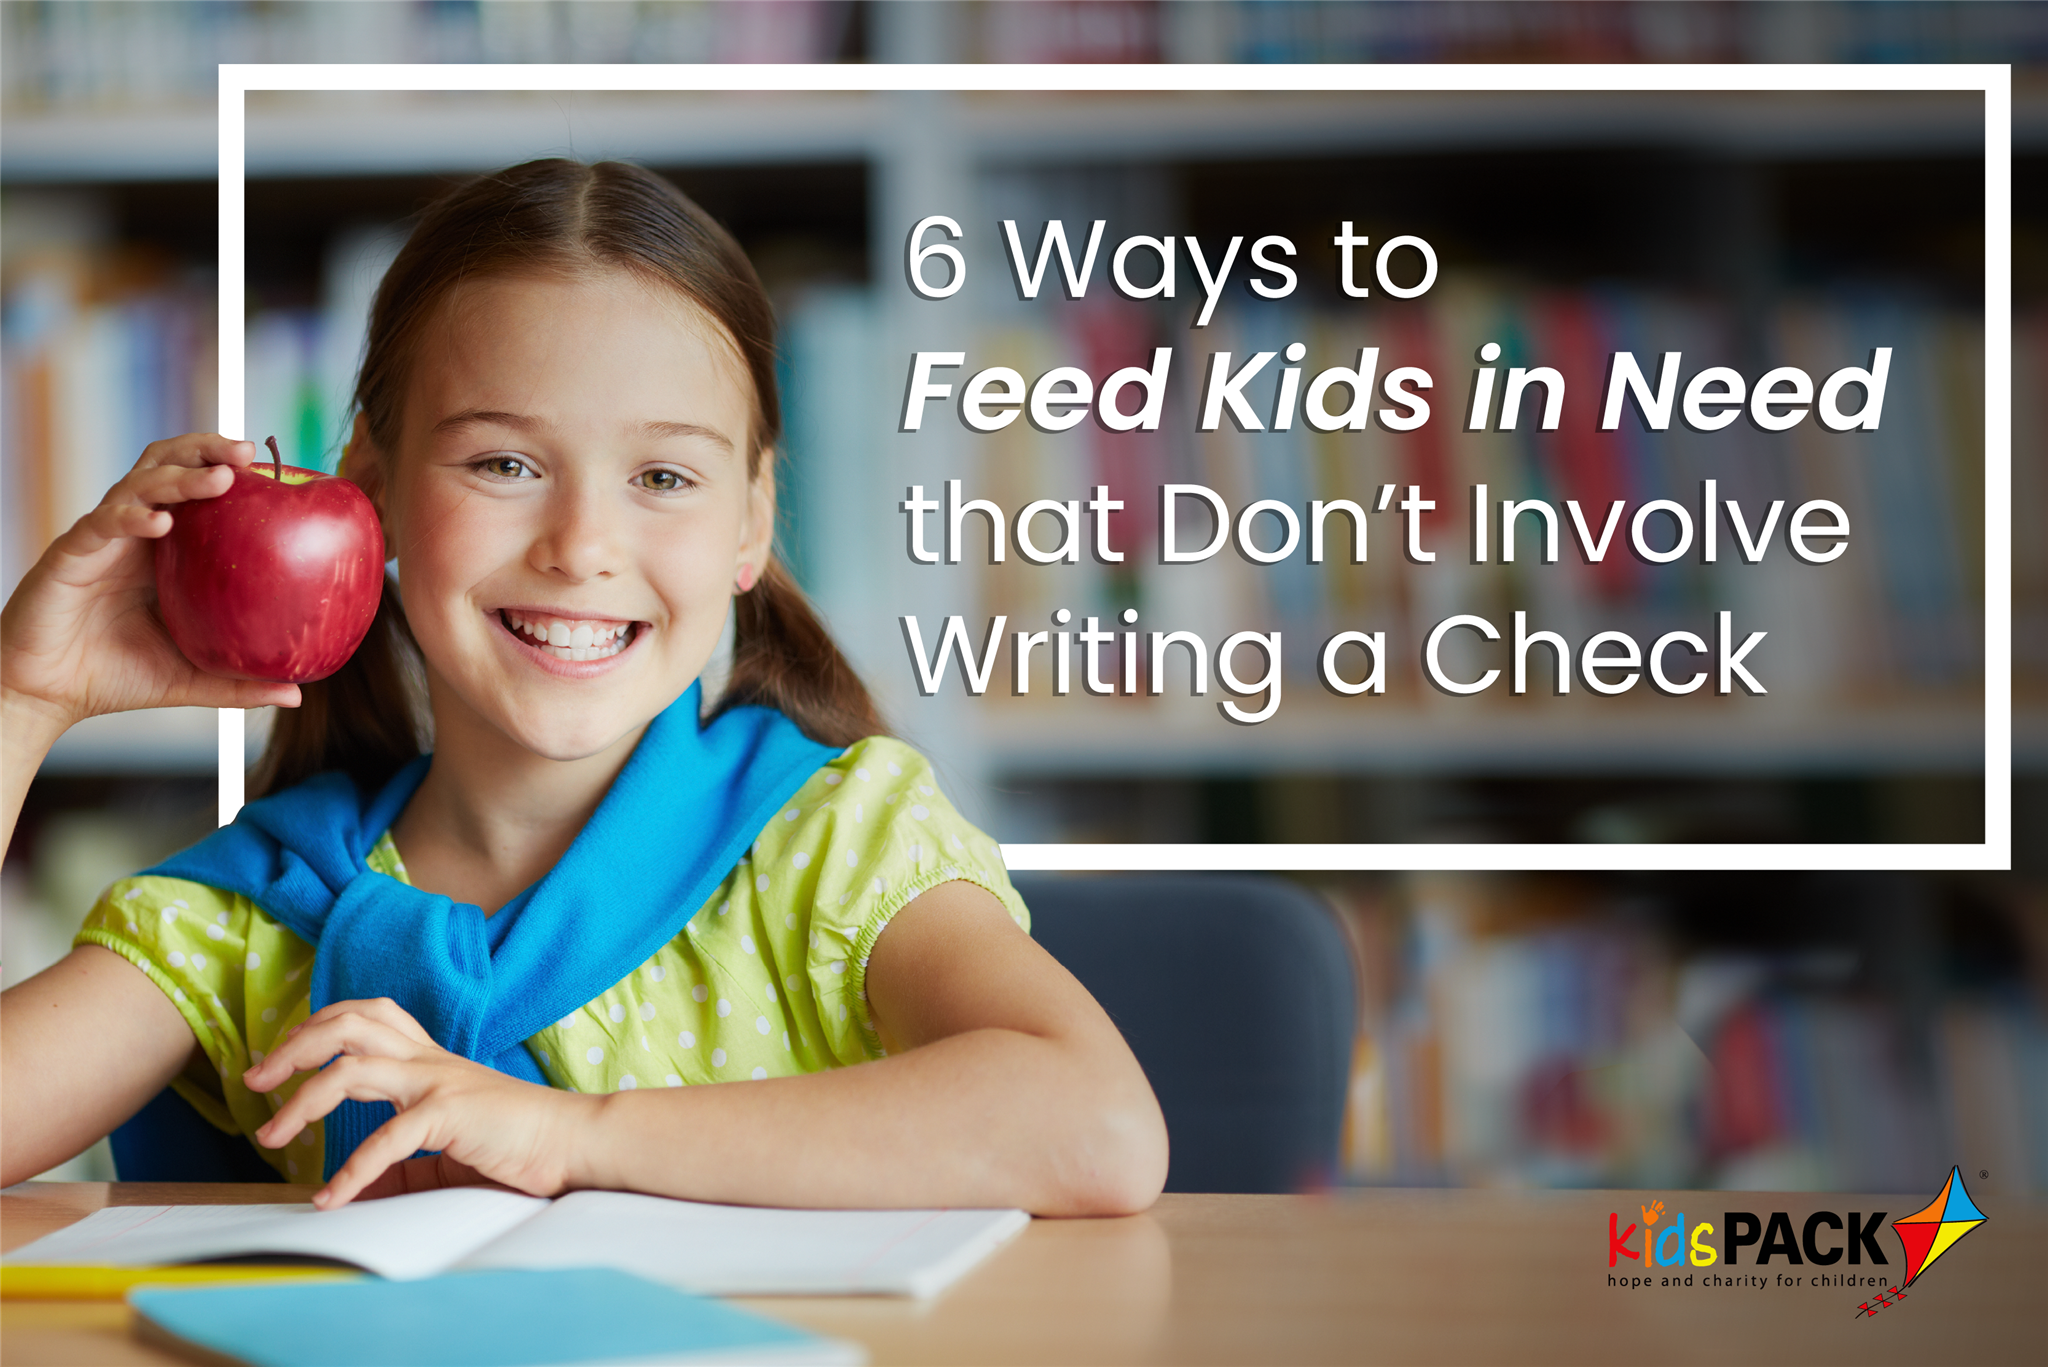 6 Ways to Feed Kids in Need that Don't Involve Writing a Check